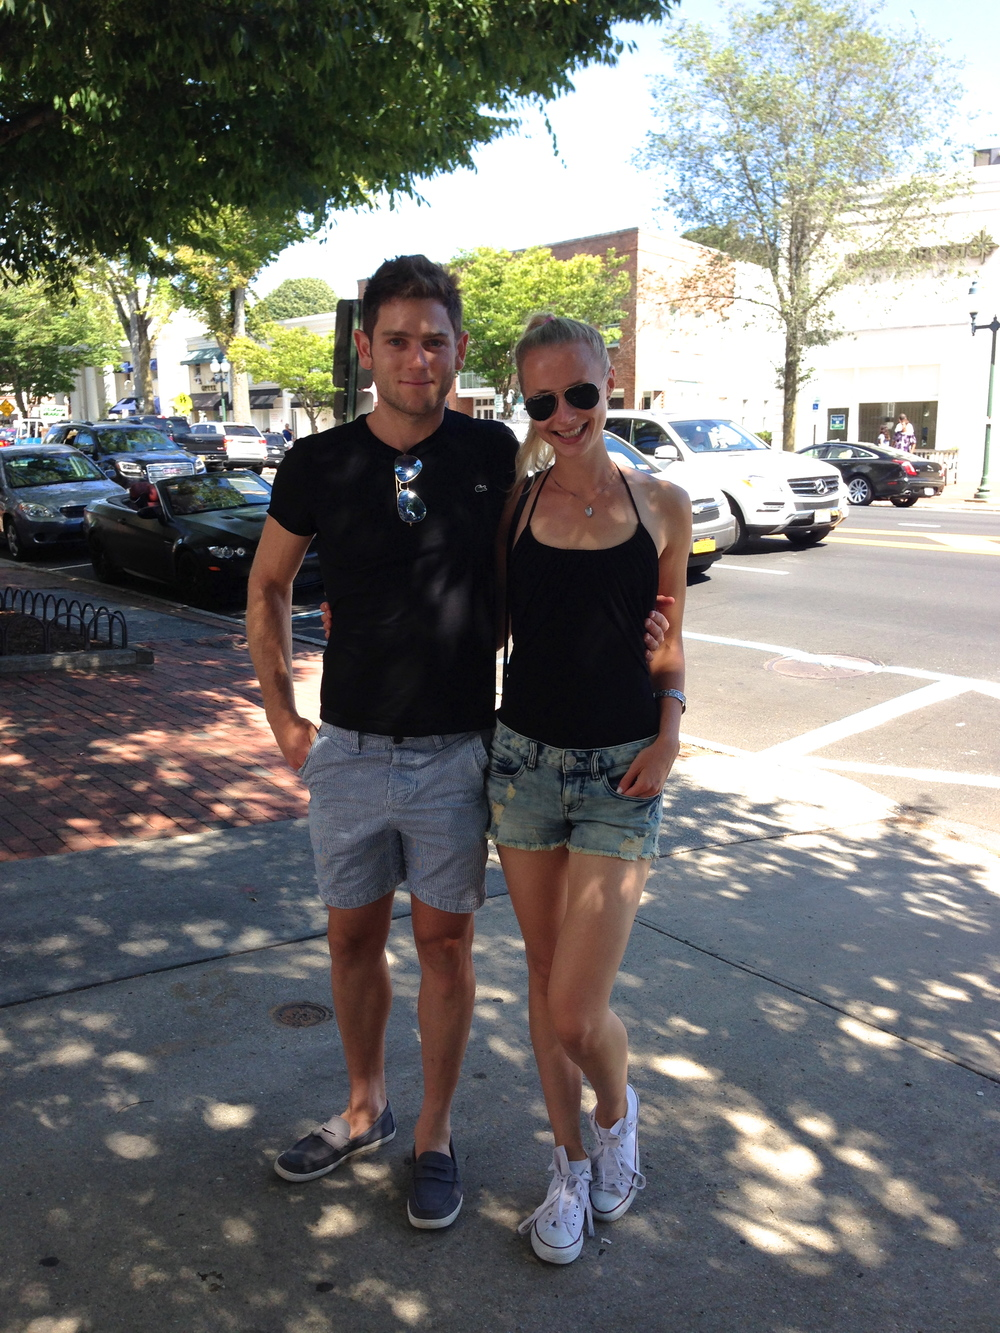 The Couple enjoying a leisurely stroll on Main Street in East Hampton. They were having a lovely time before they stopped in at some of the local fitness destinations, which presented a form of workout AFC had never before encountered.